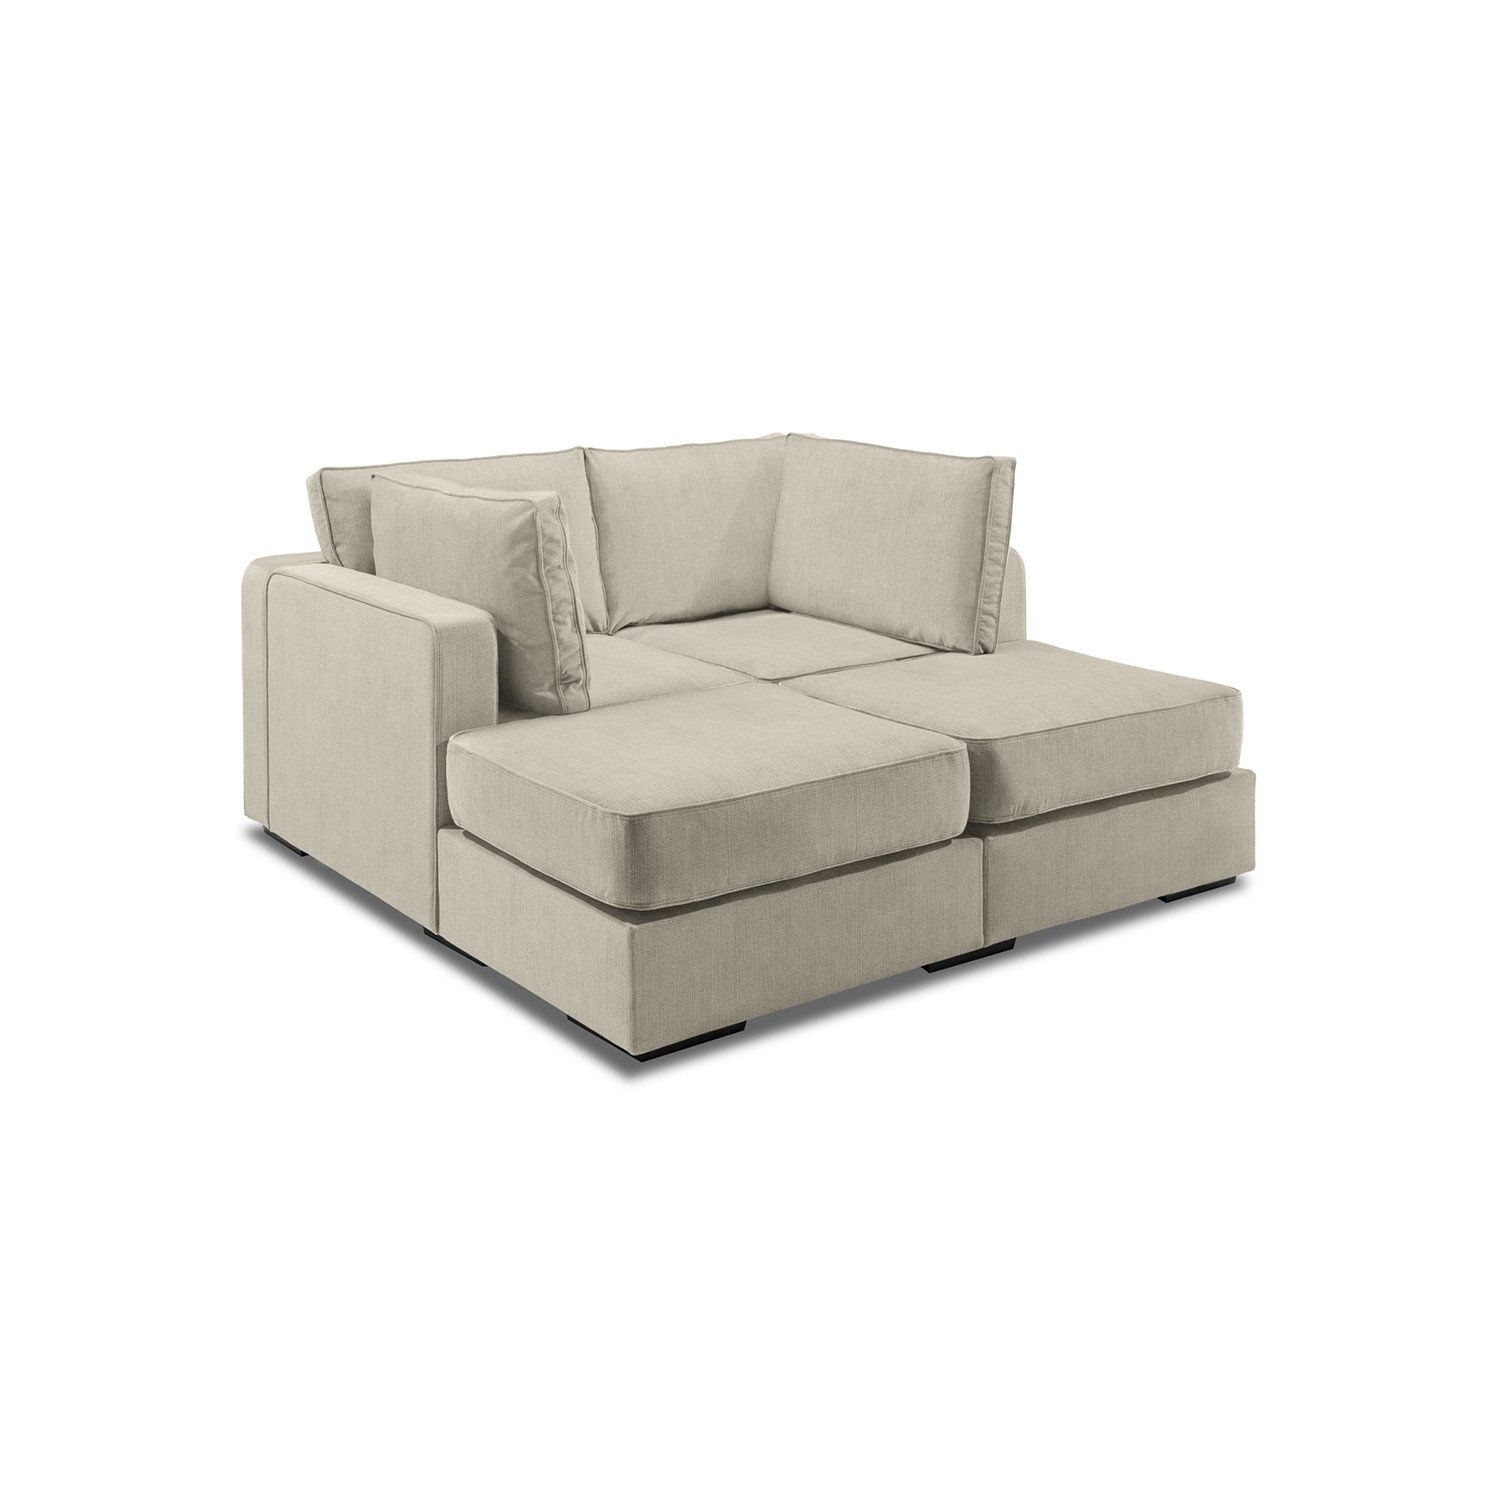 5 Series Sactionals Movie Lounger Taupe LoveSac Touch of